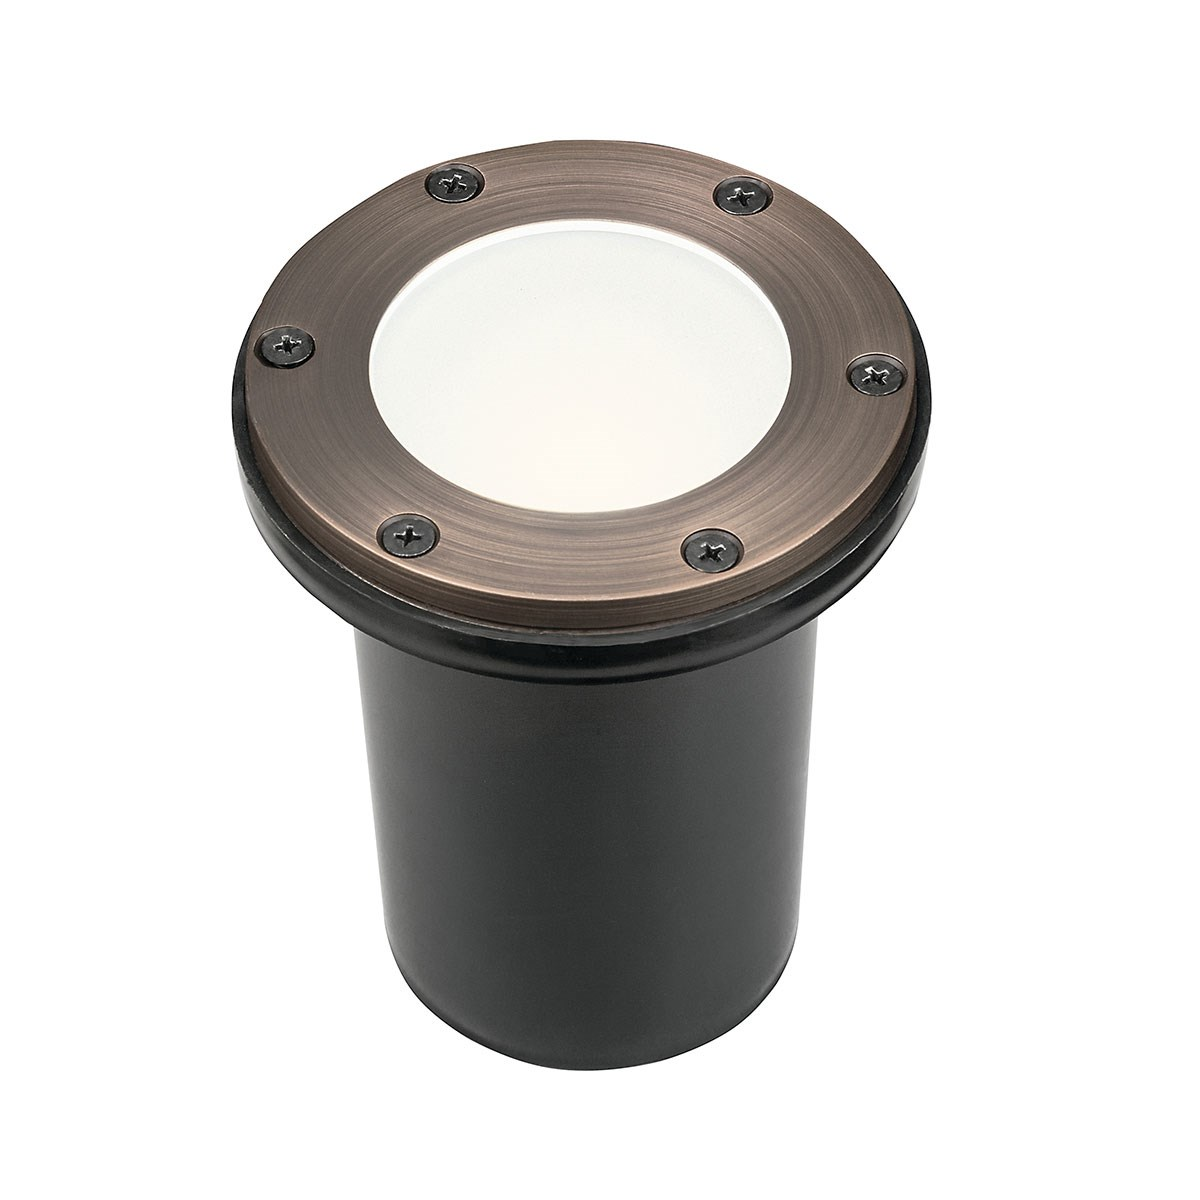 12V Brass In-Ground Light with Frosted Glass CBR